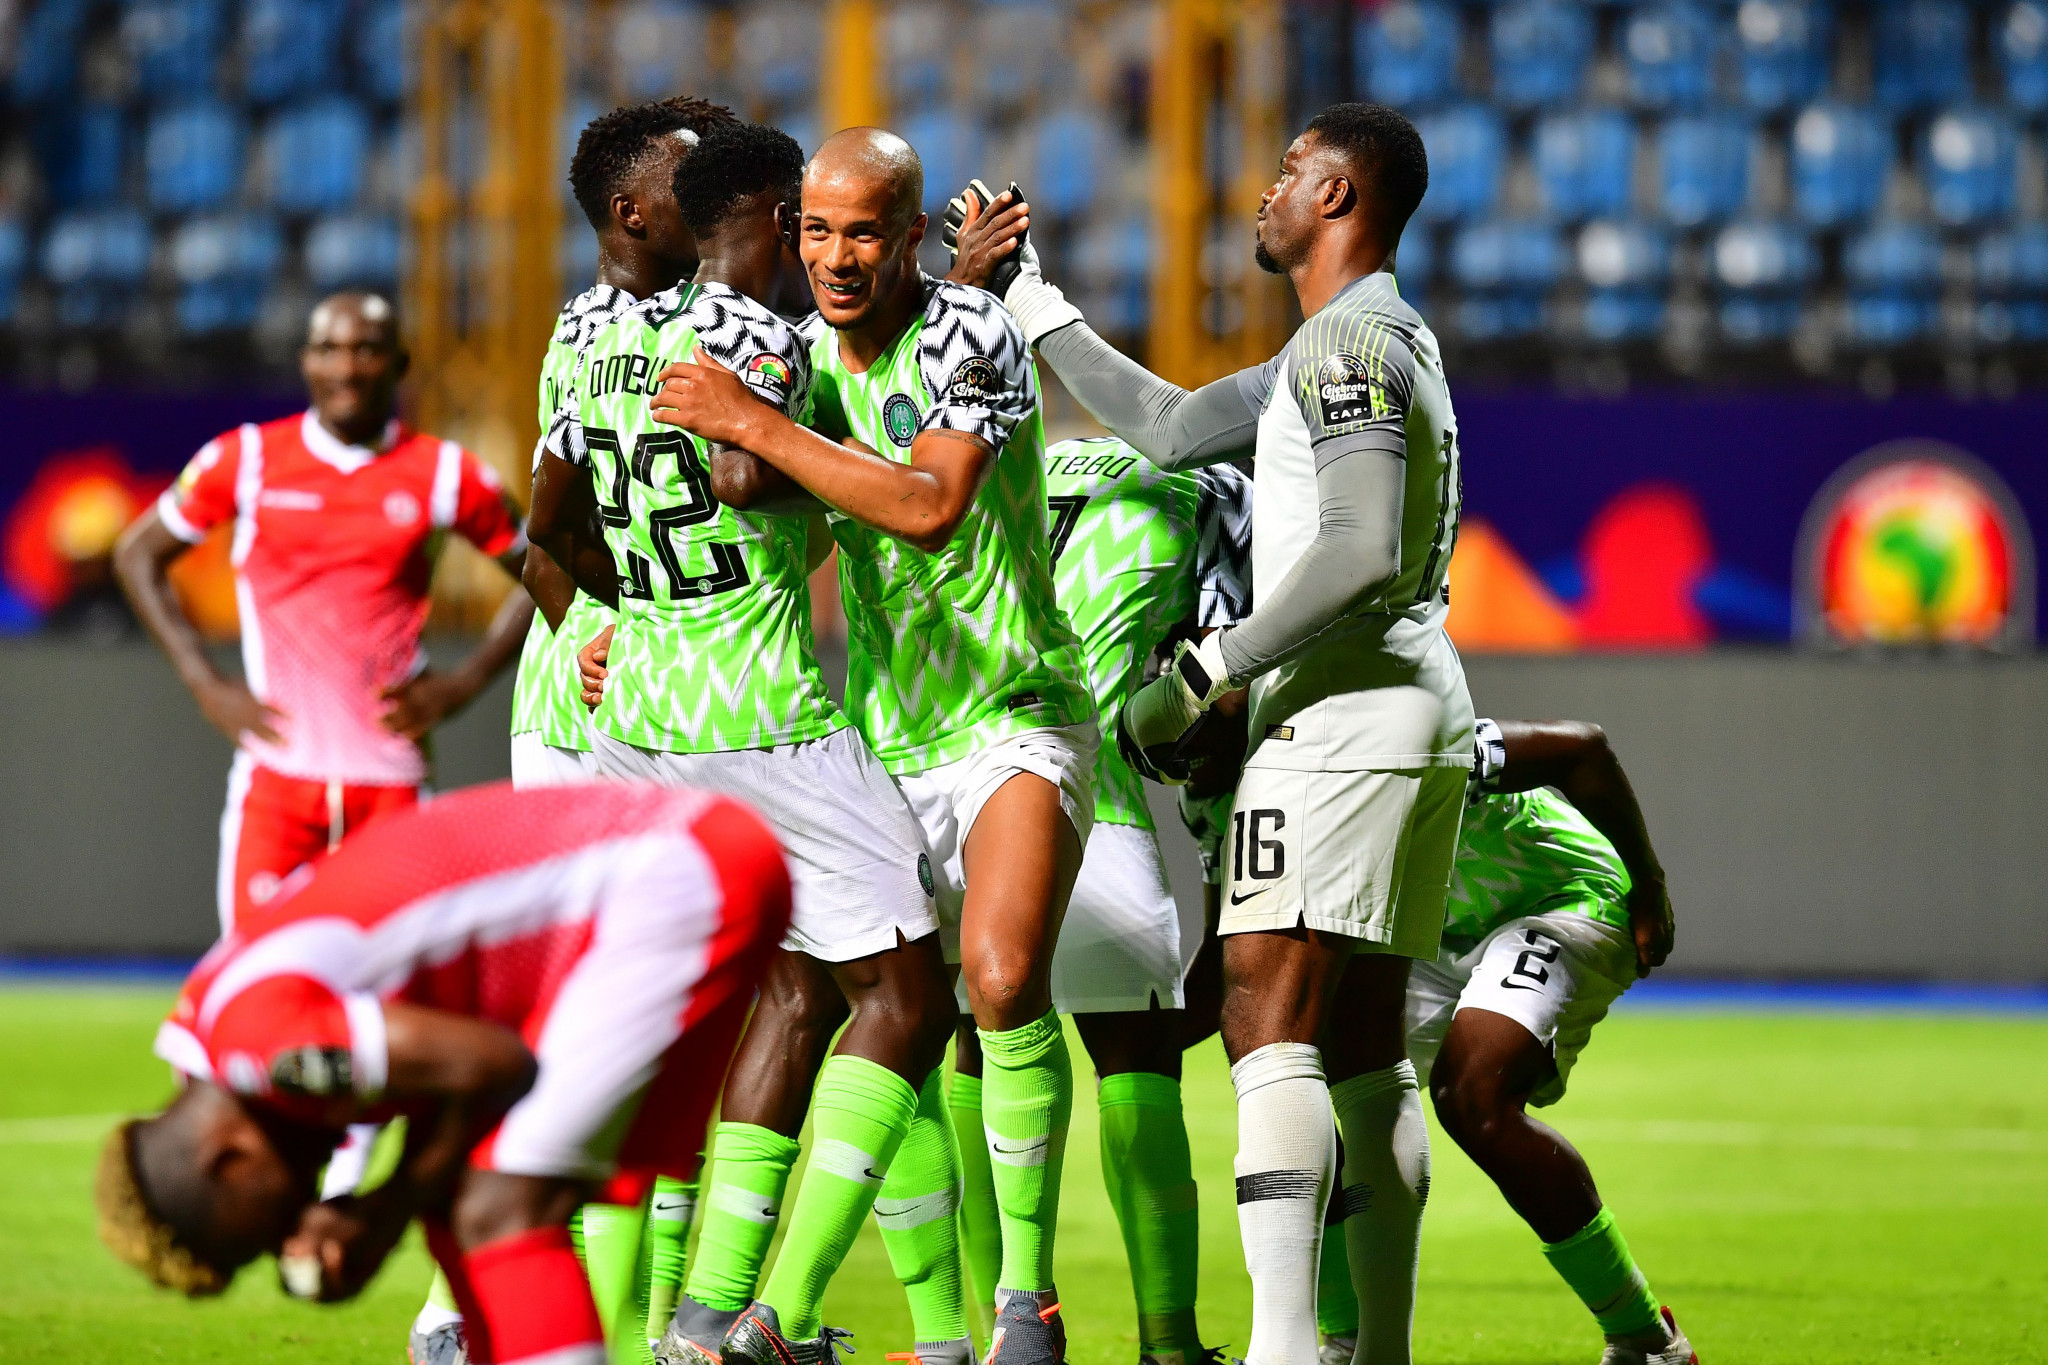 Nigeria beat debutants Burundi 1-0 in their opening Group B clash at the Africa Cup of Nations ©Getty Images